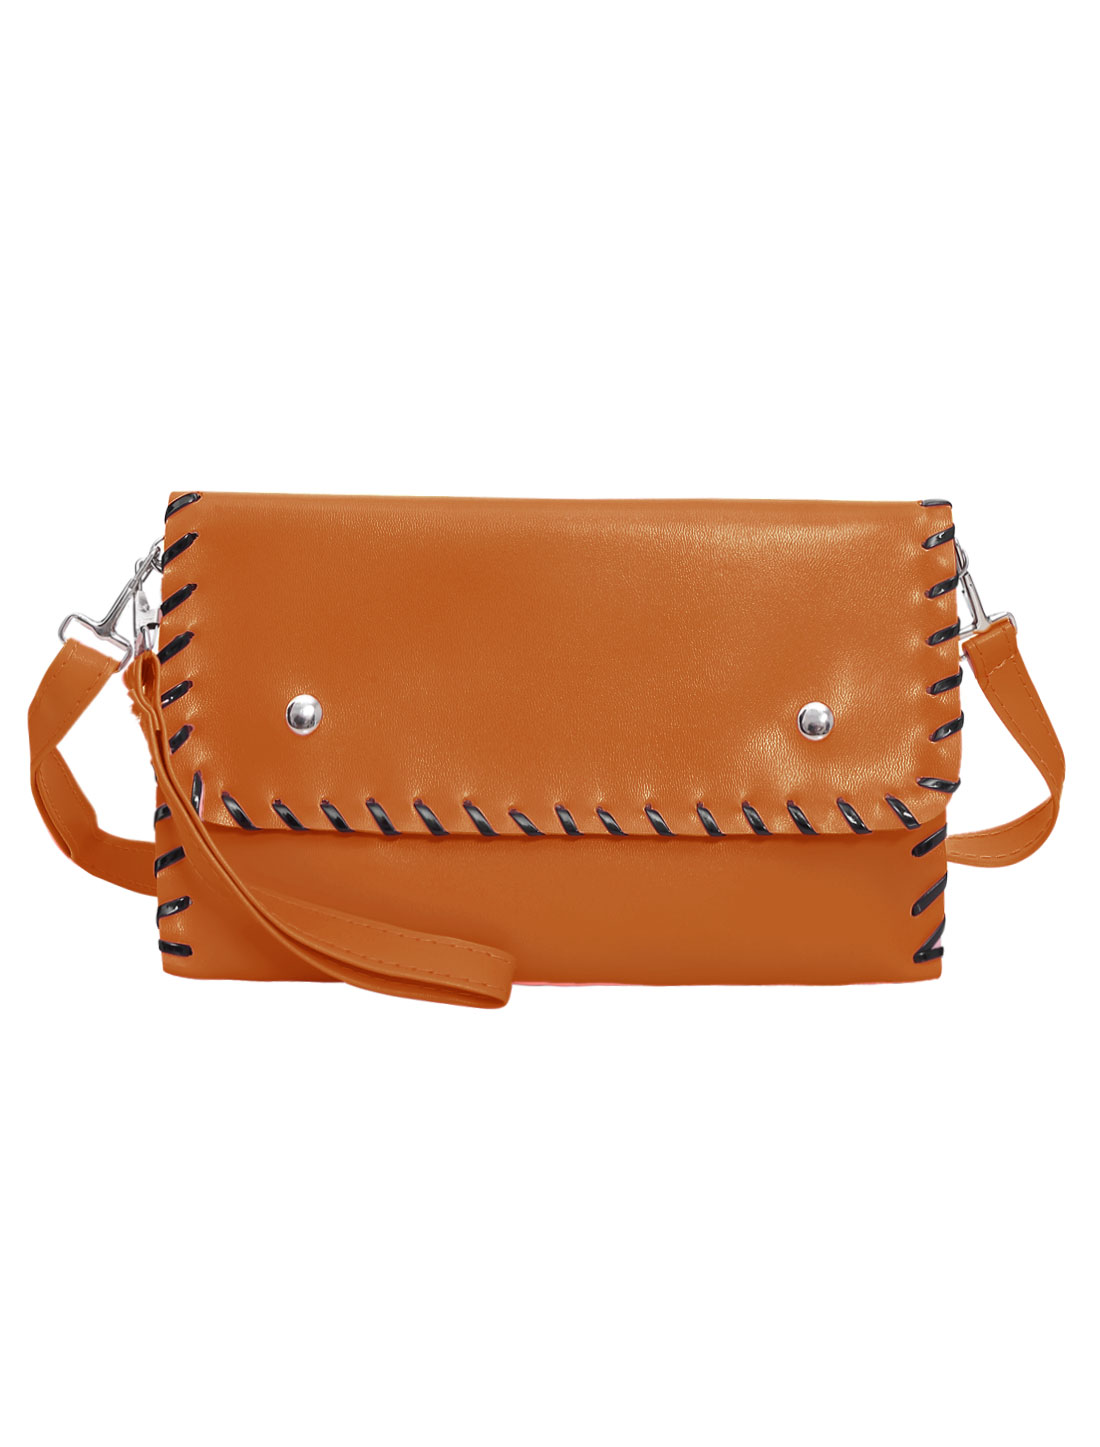 Woman Contrast-Colored Stitching Envelope Style Clutch Handbag Brown